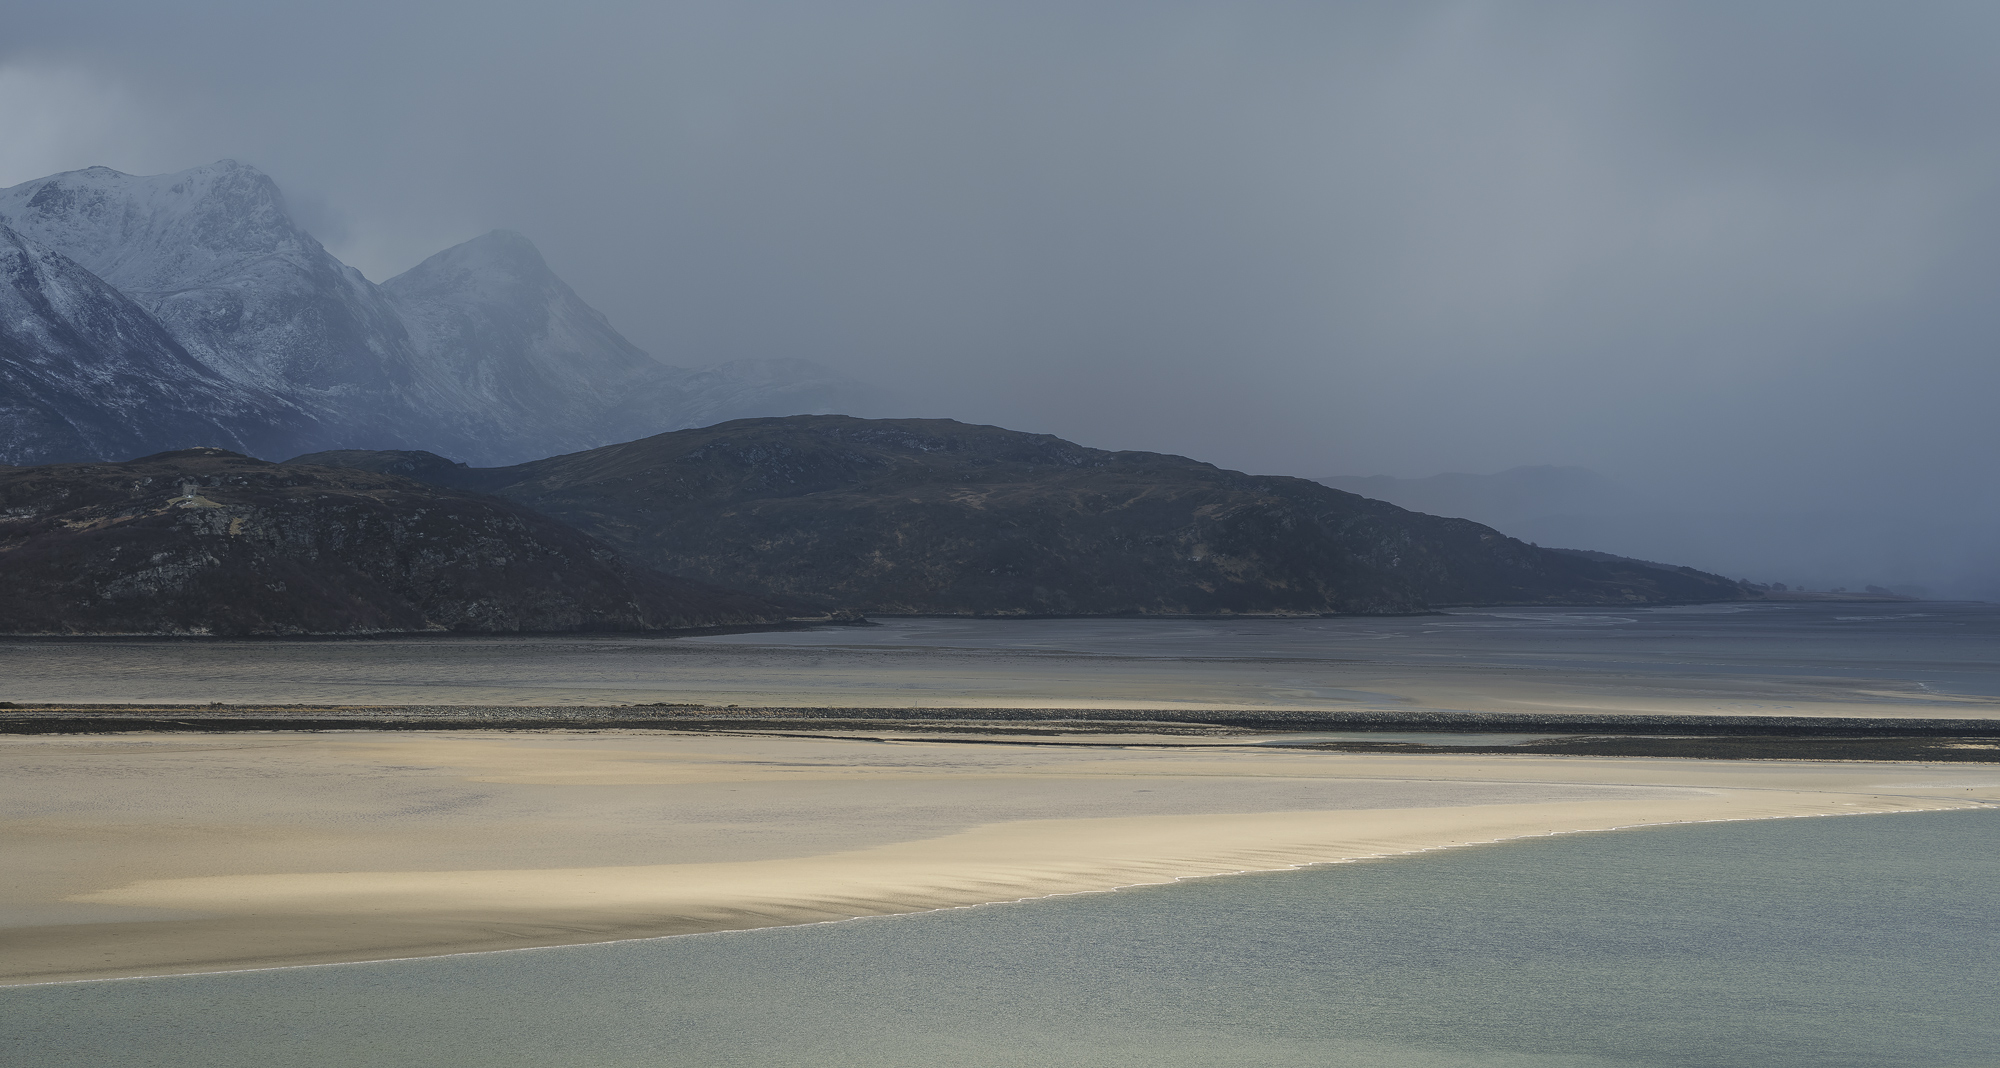 A spring squall complete with snow and hail obiterates the peaks of snow dusted Ben Loyal whilst traces of sunlight paint the estuary.